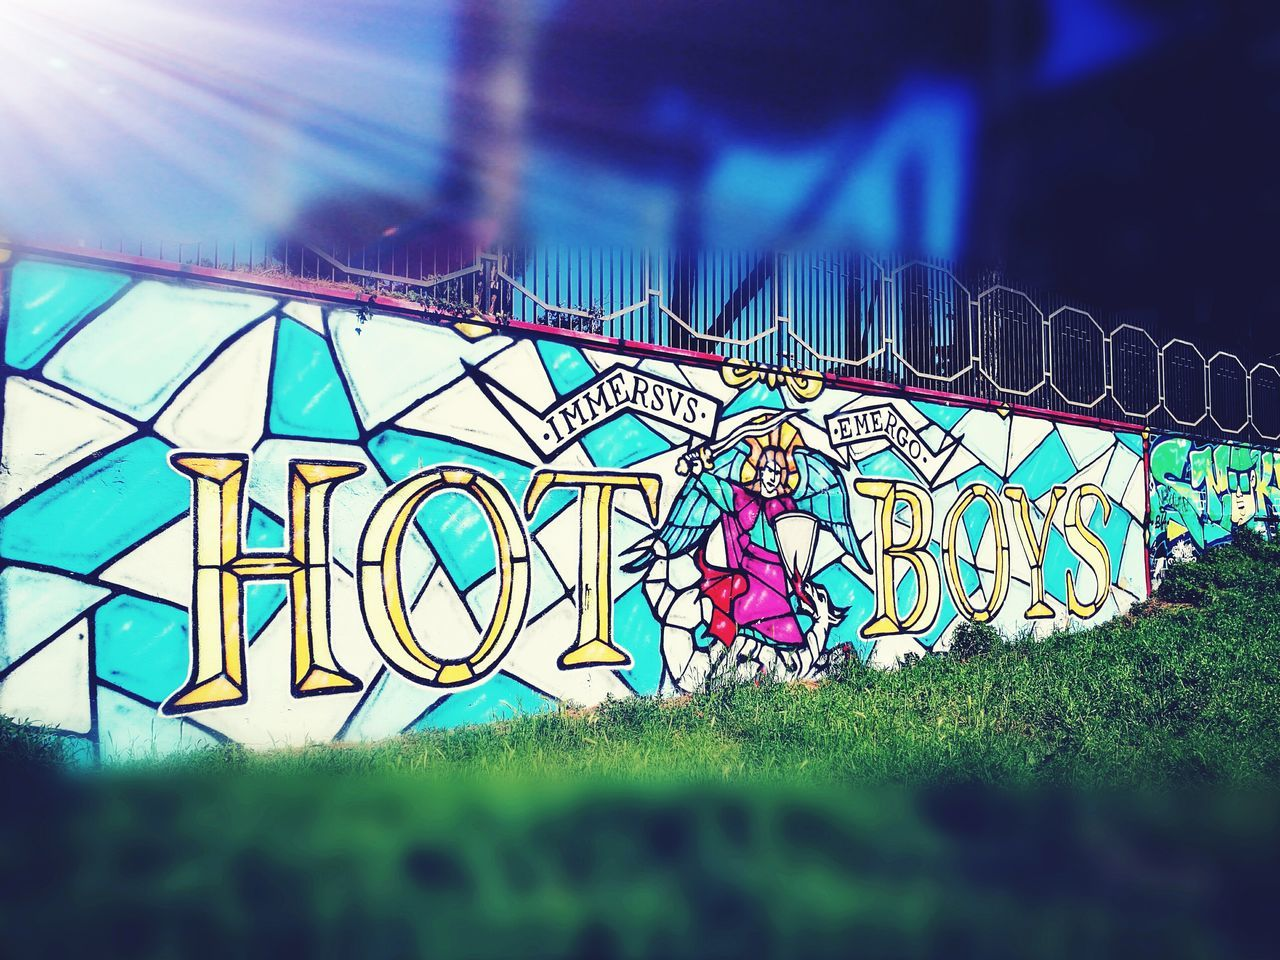 Graffiti Wall Popular Art Multi Colored Popuar Area Huaweip9photos School Outdoors No People Day